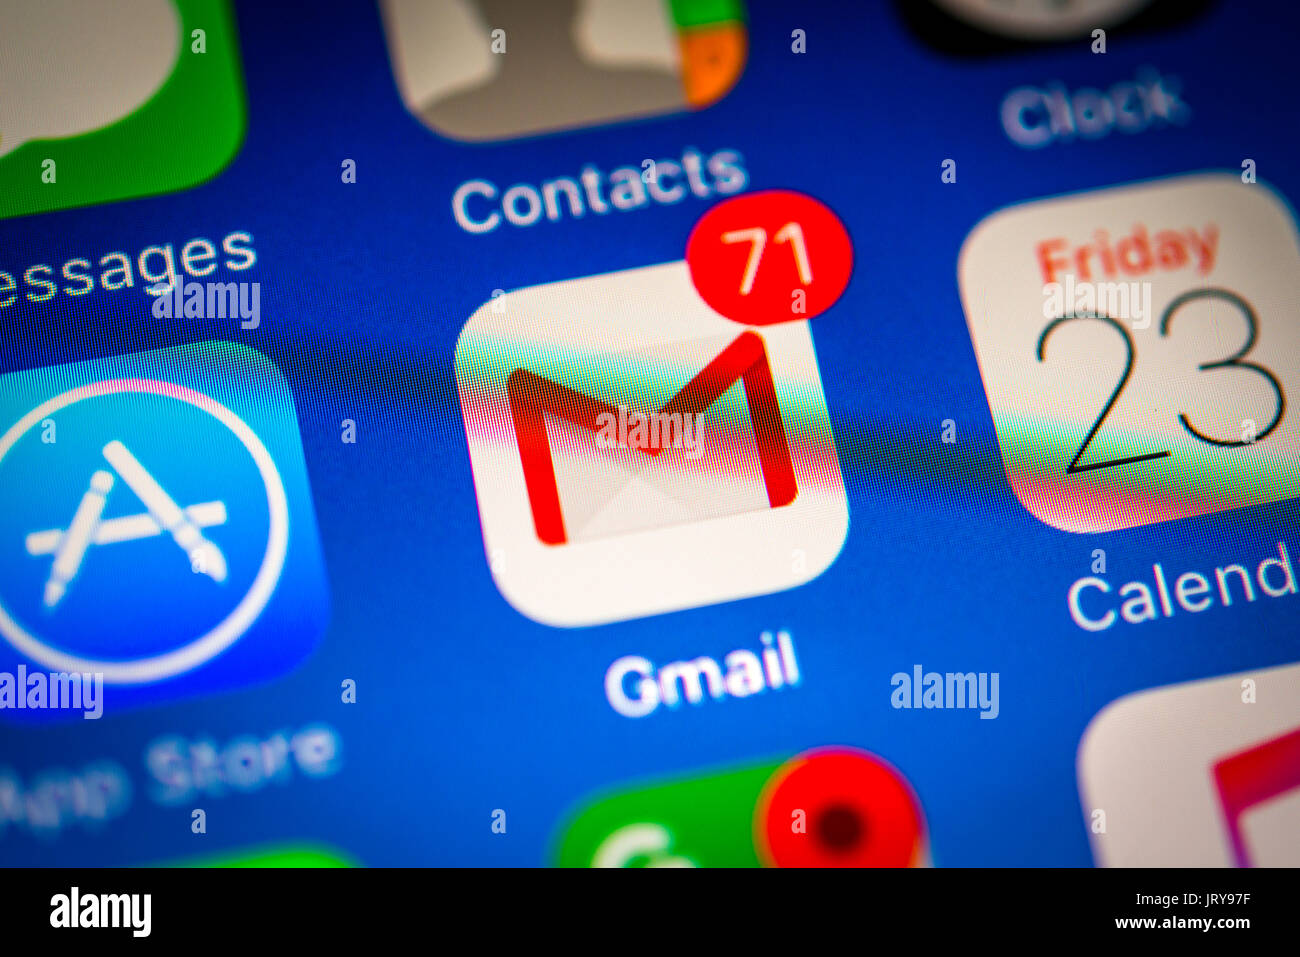 Gmail, Google Mail, Googlemail, Email, Icon, Logo, Display, Screen, iPhone, Many different app icons, app, cell phone - Stock Image